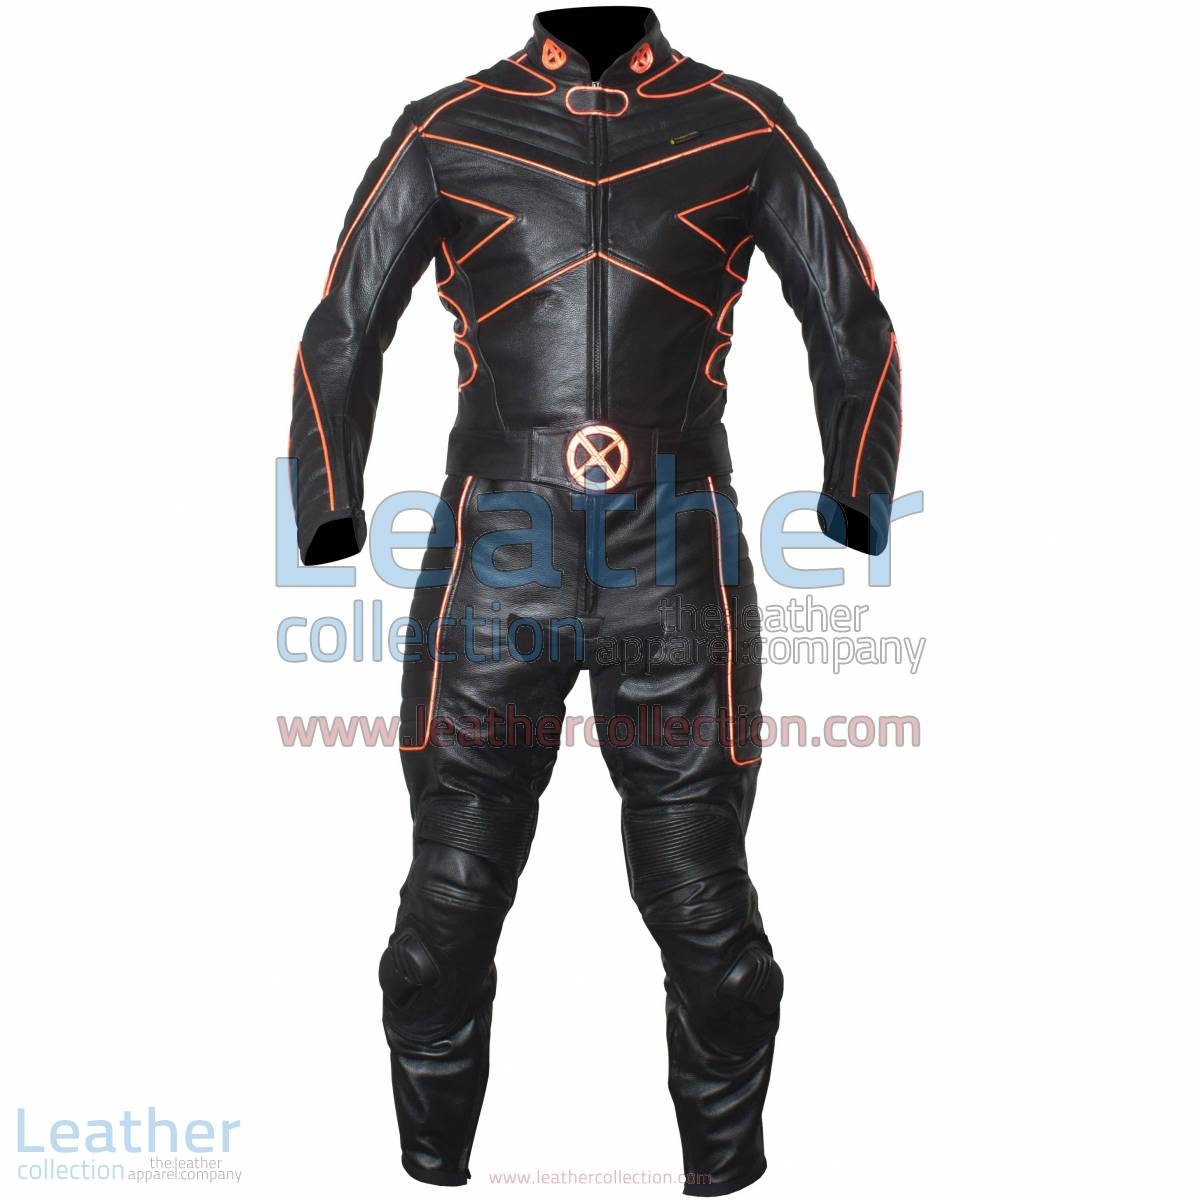 X-MEN Motorcycle Racing Leather Suit with Orange Piping | Motorcycle racing suit,X-MEN suit